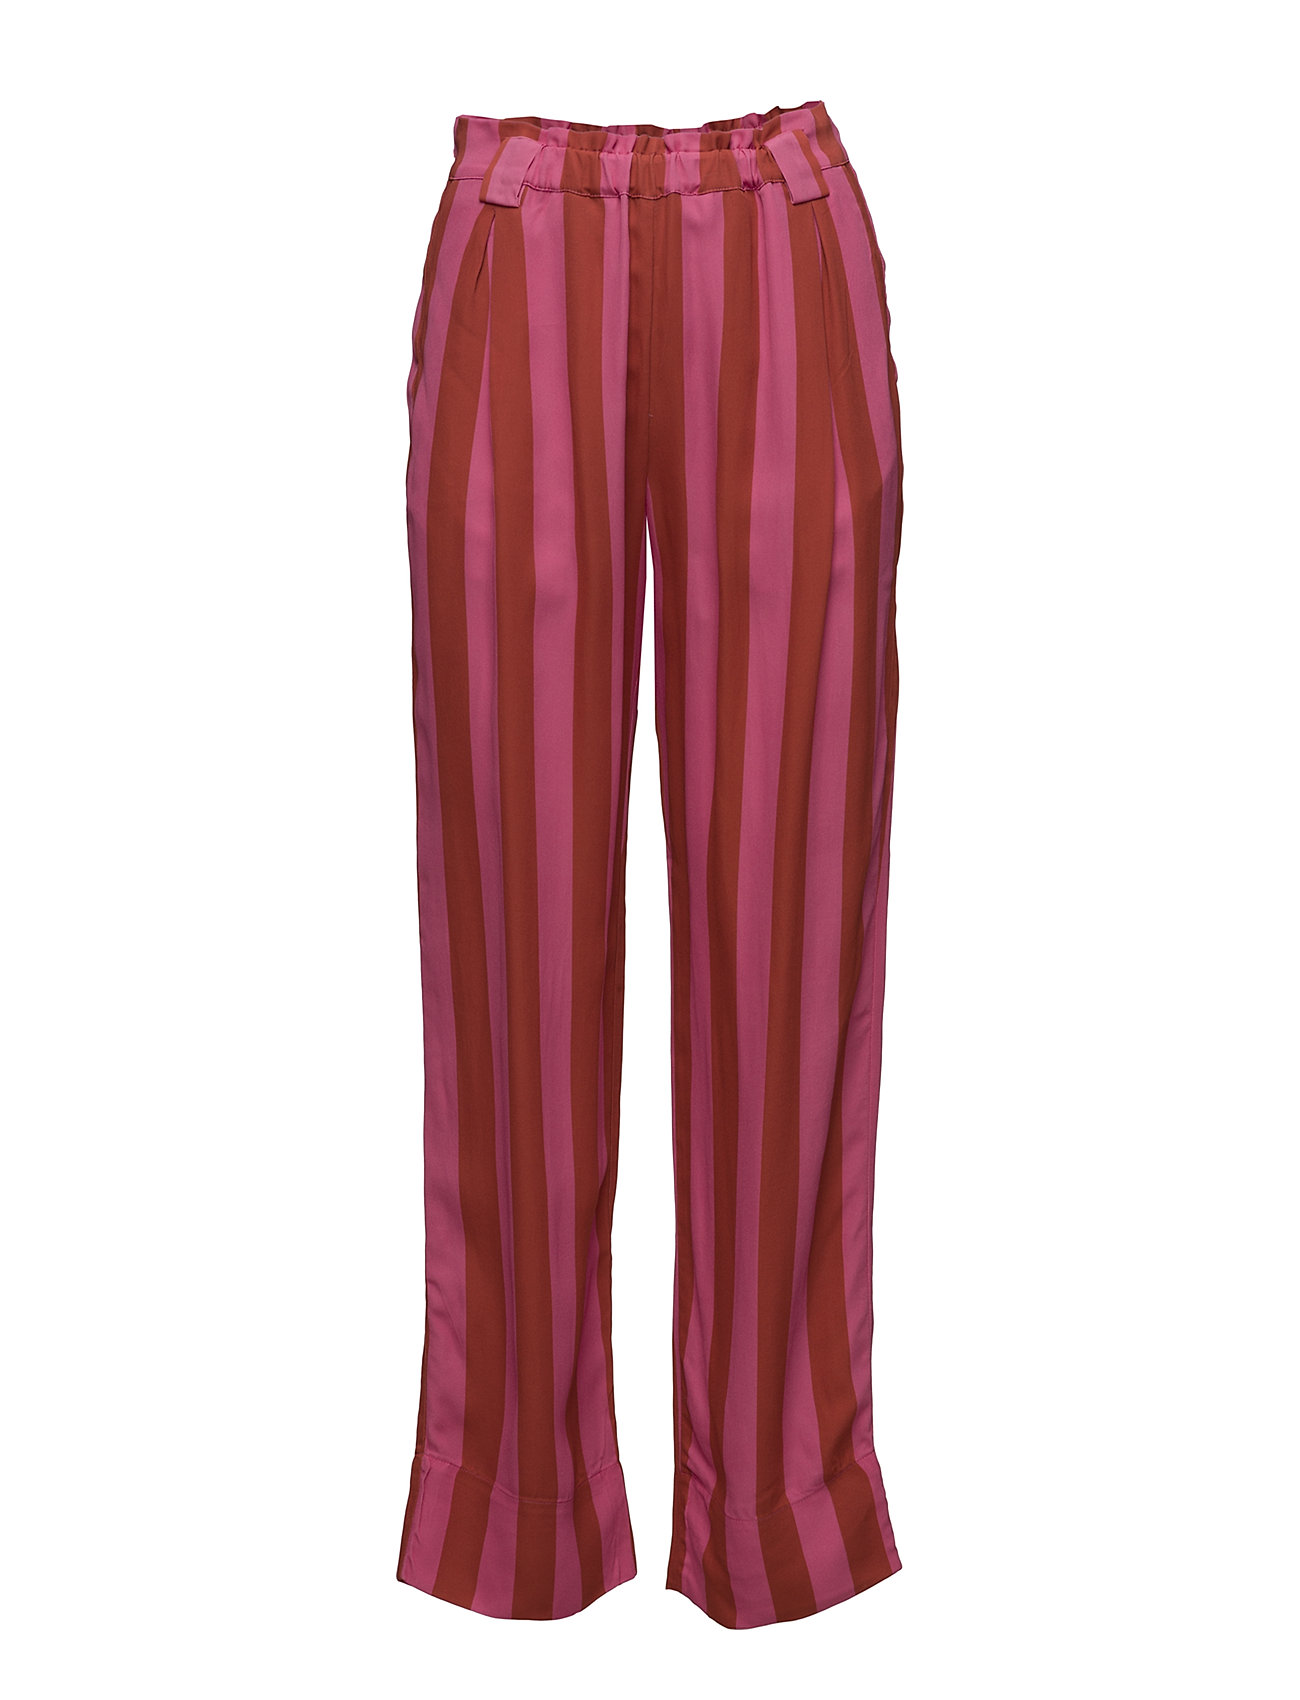 STINE GOYA Vinnie, 416 Viscose - STRIPES RASPBERRY